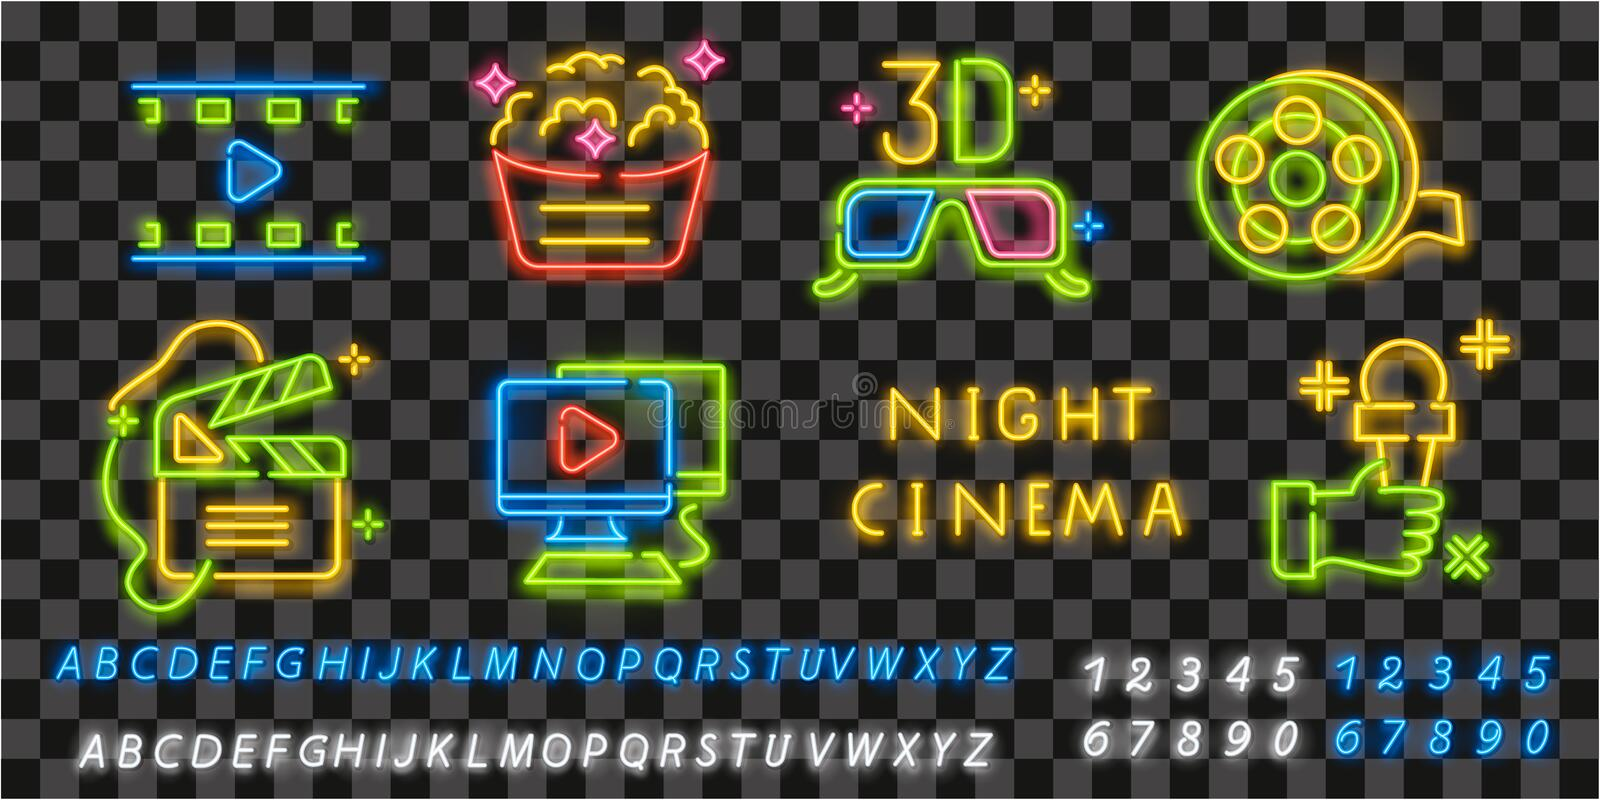 Neon Cinema icons. Icon from cinema. Movie neon sign. Film, Popcorn, 3D glasses, Tickets, 4k film and Play icon. Vector royalty free illustration